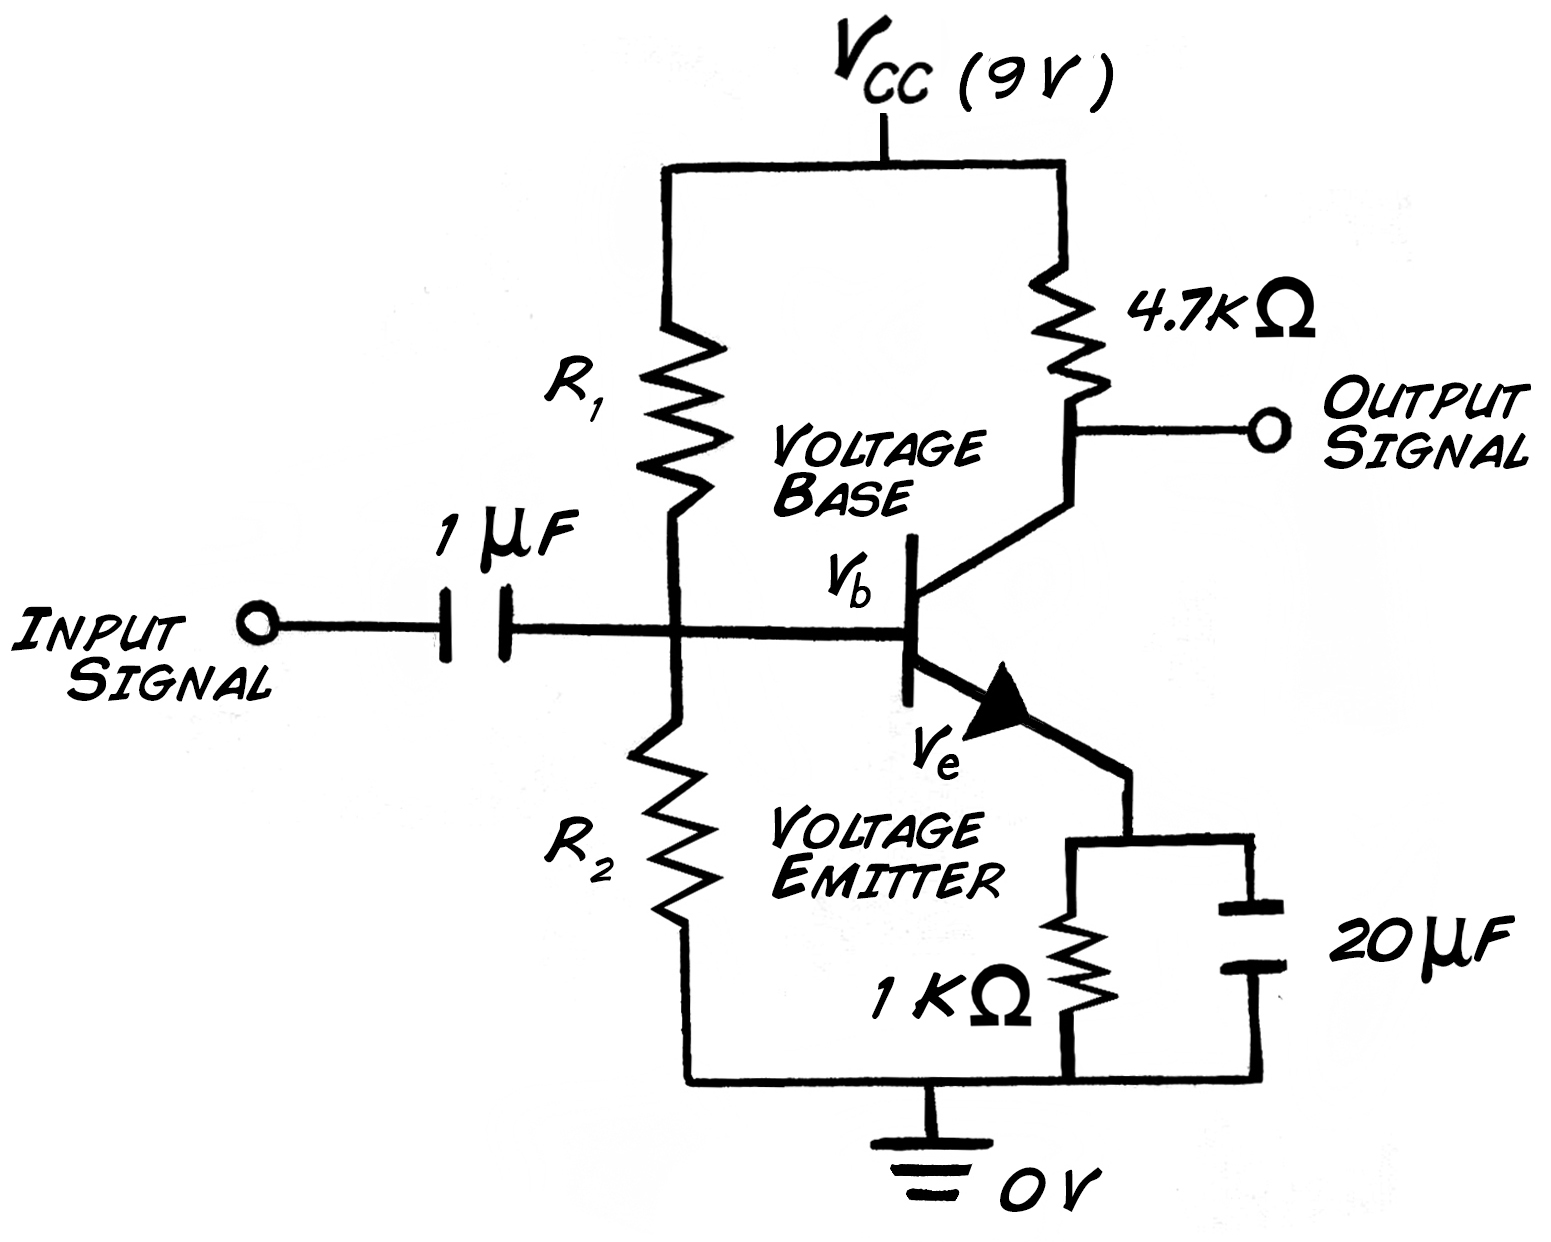 Transistor Theory Golfclub Intercom Circuit With Transistors Simple Schematic Collection Experiment Design